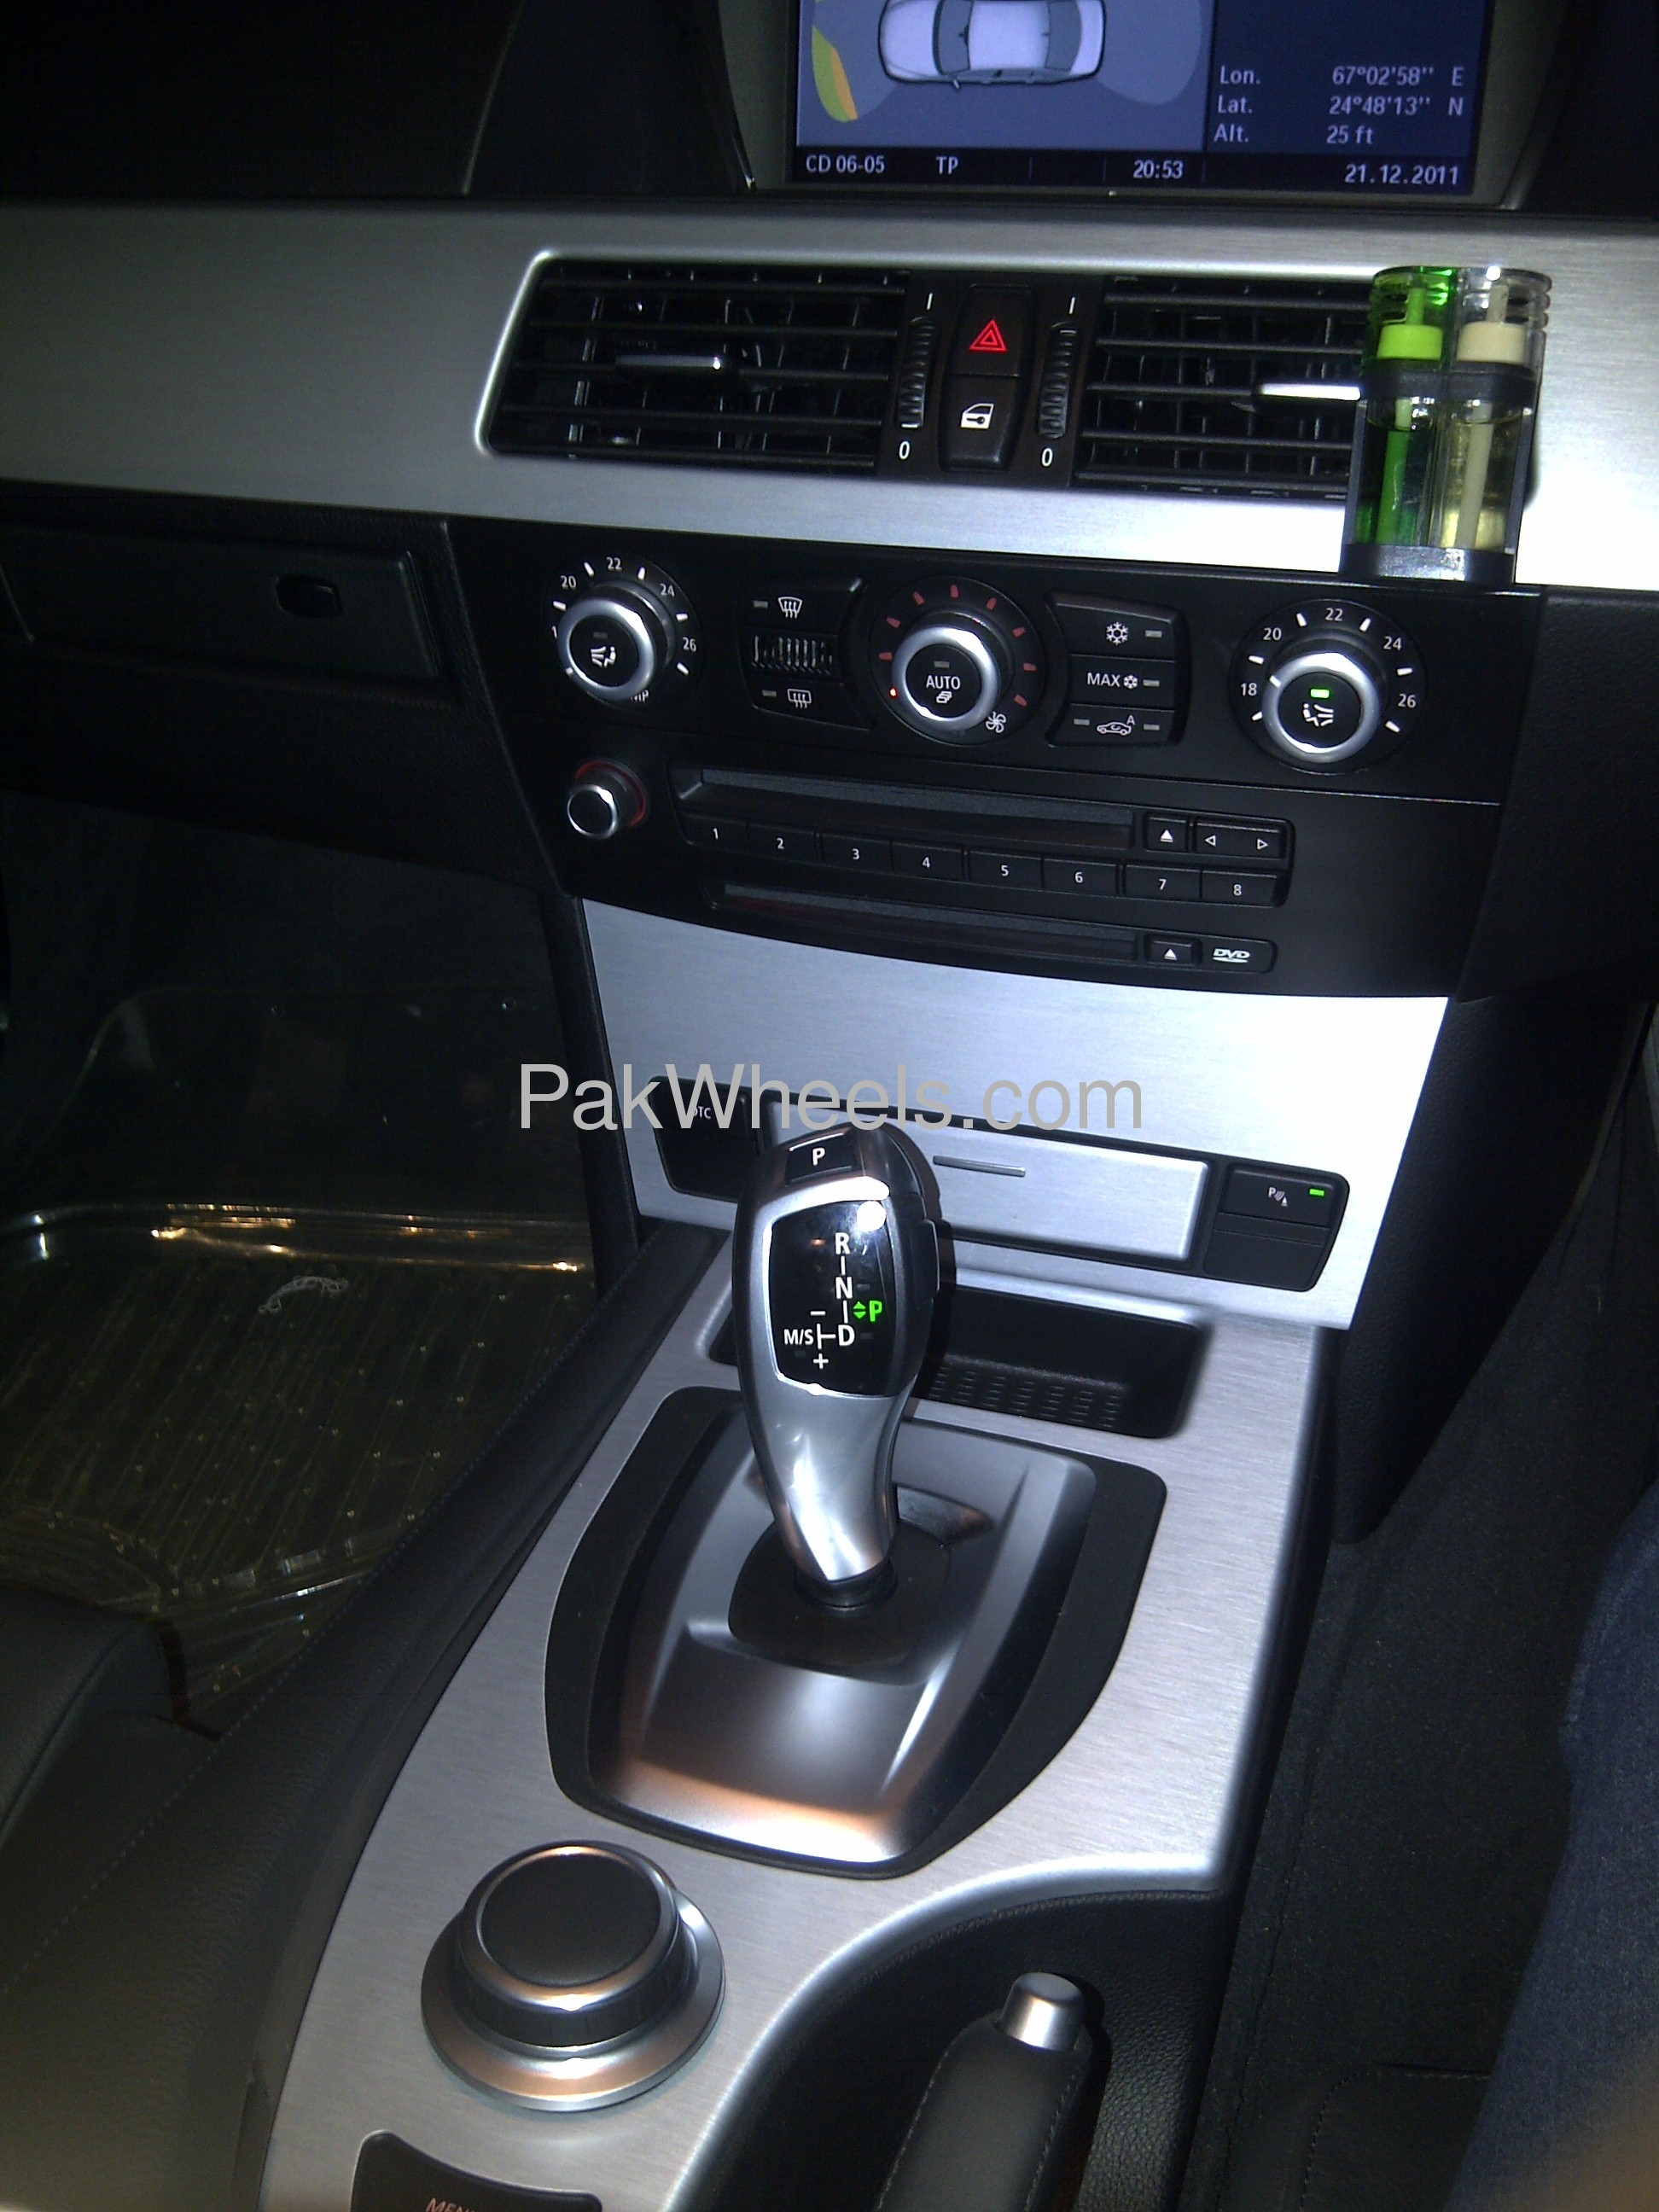 BMW 5 Series 530i 2008 for sale in Karachi | PakWheels